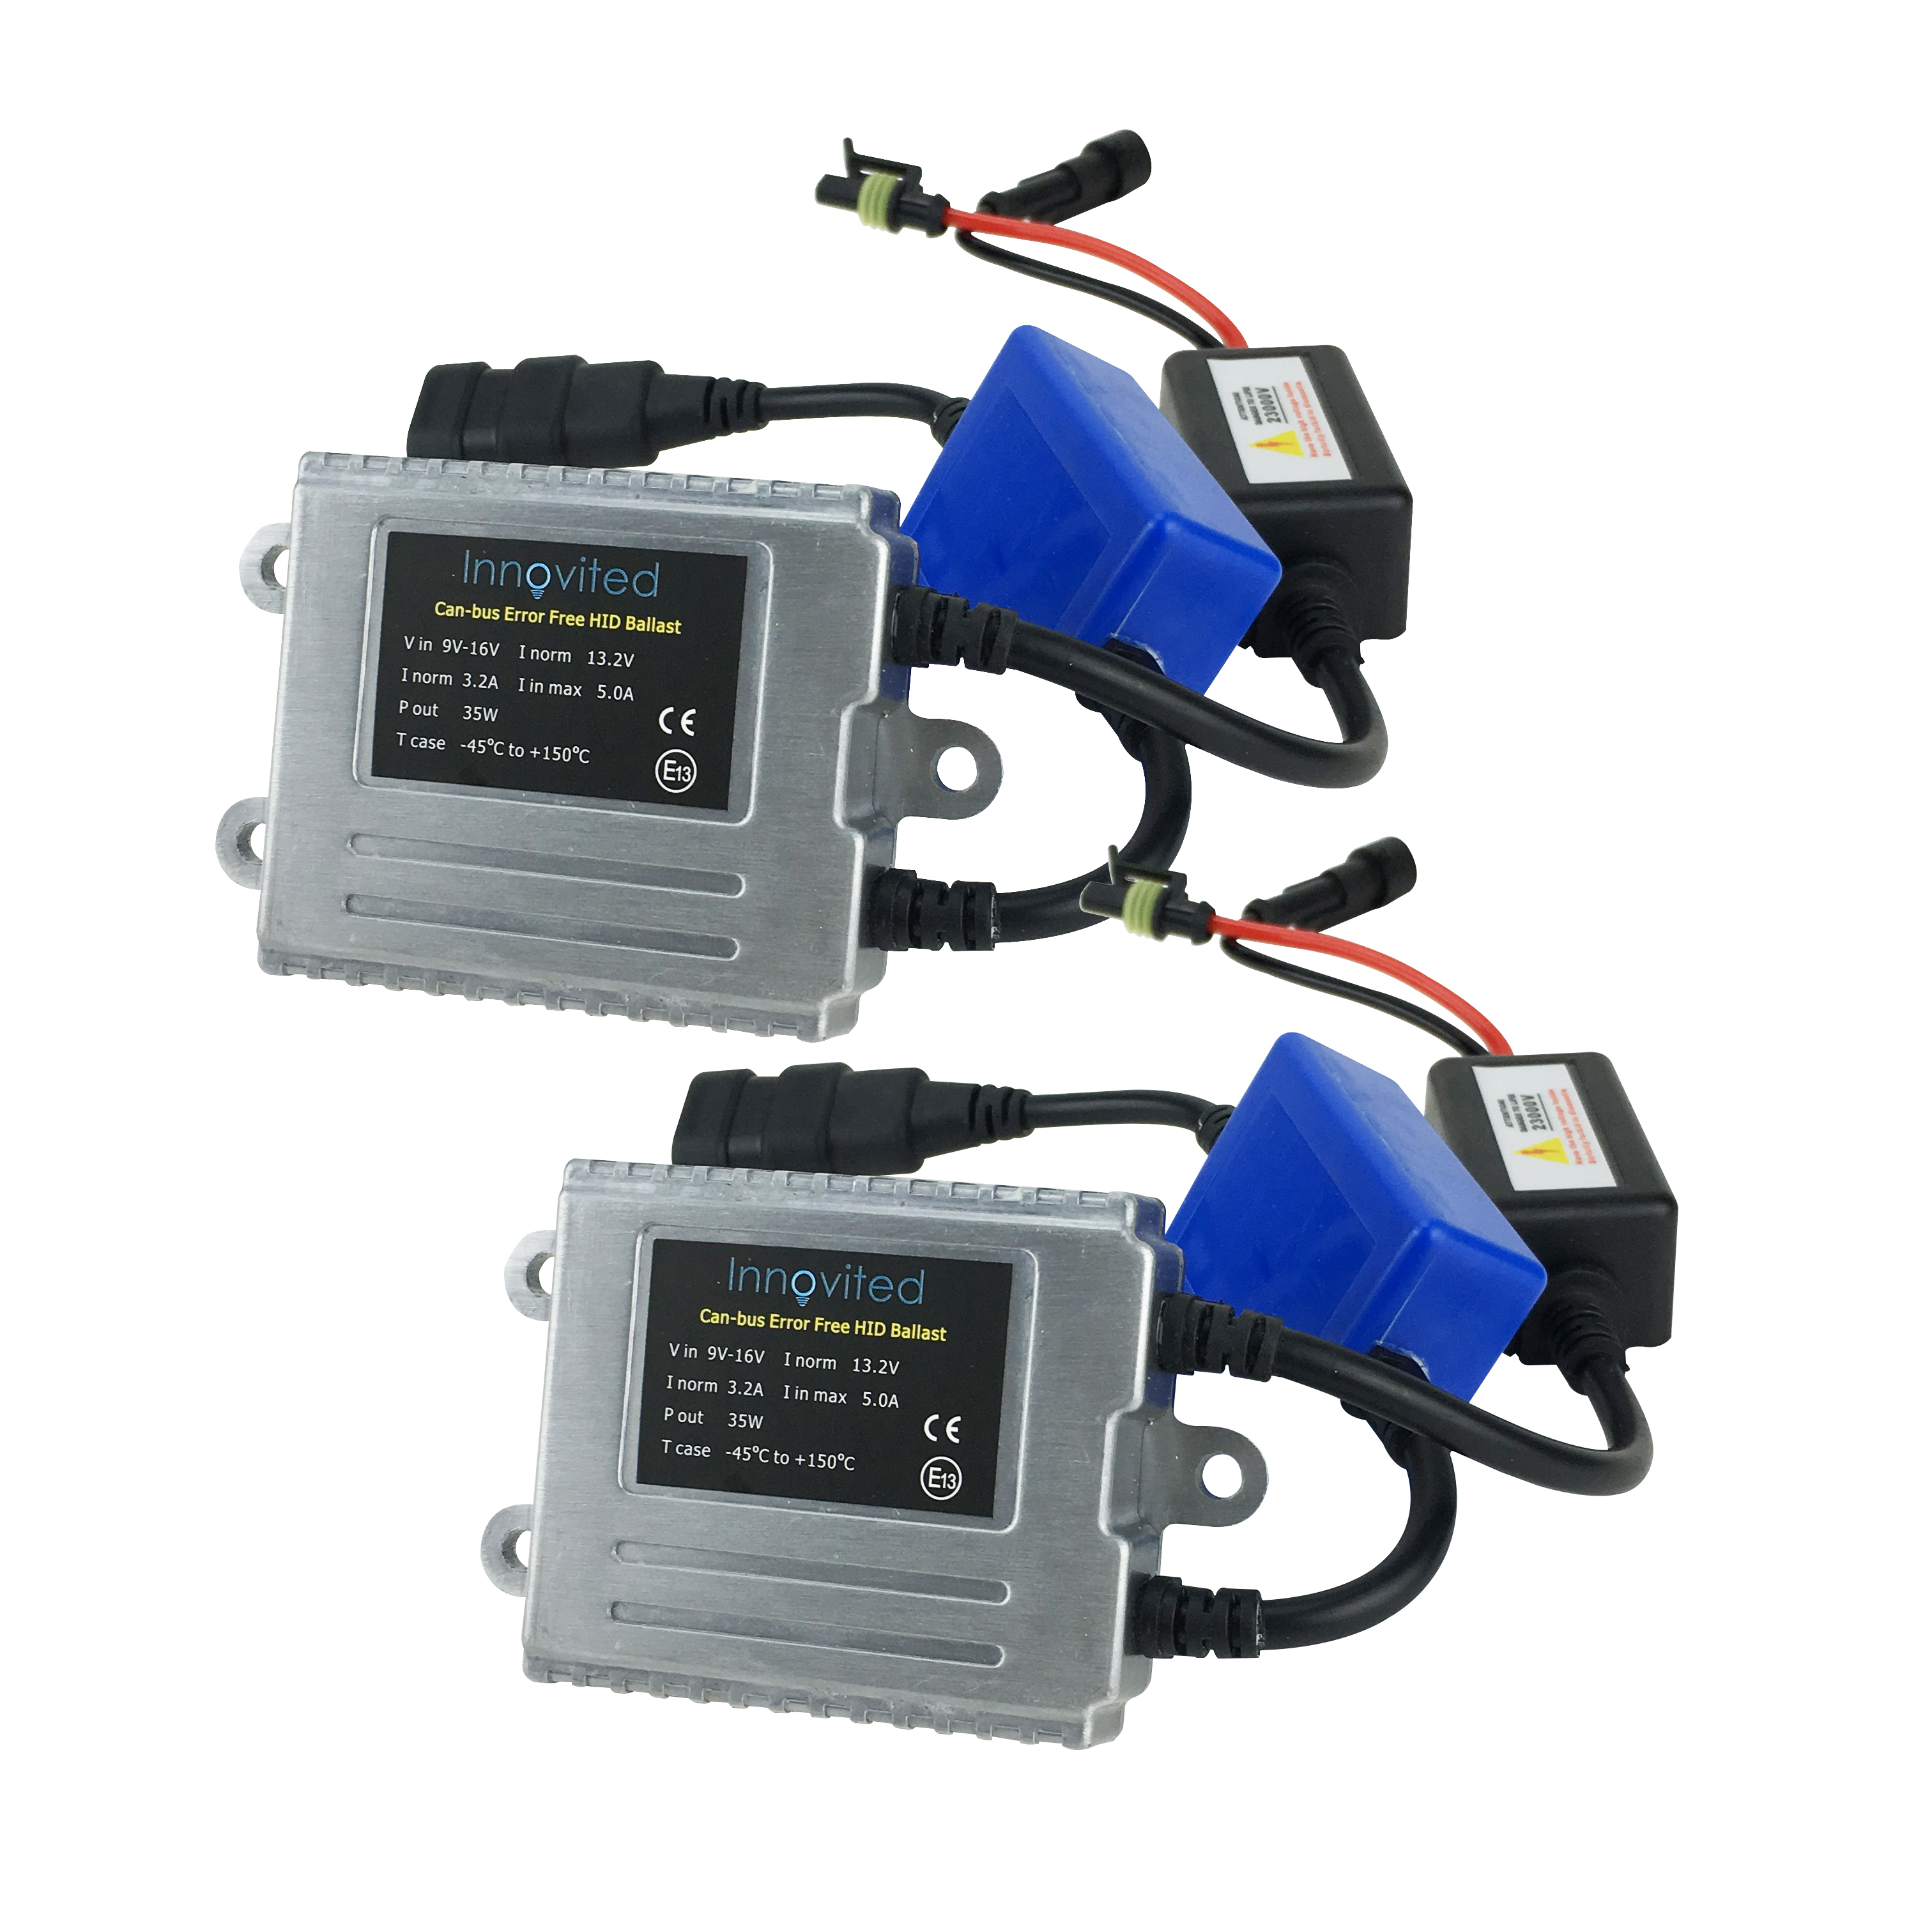 Details about 2X AC Canbus Error Free Canceller Digital HID Ballast on